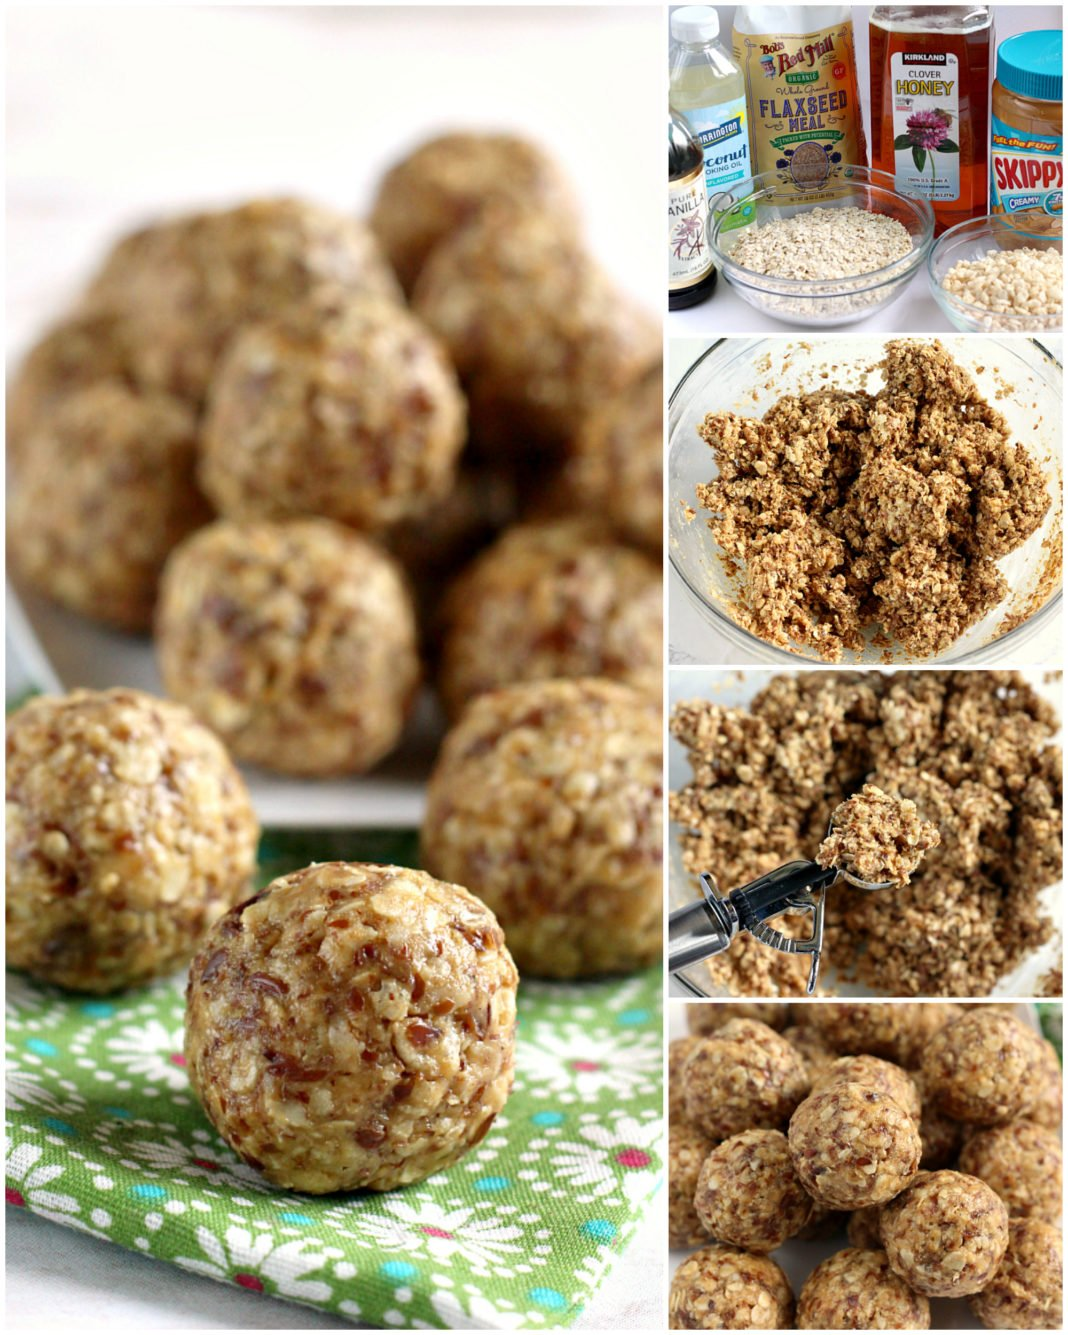 Step-by-step instructions on how to make Oatmeal Peanut Butter Protein Balls